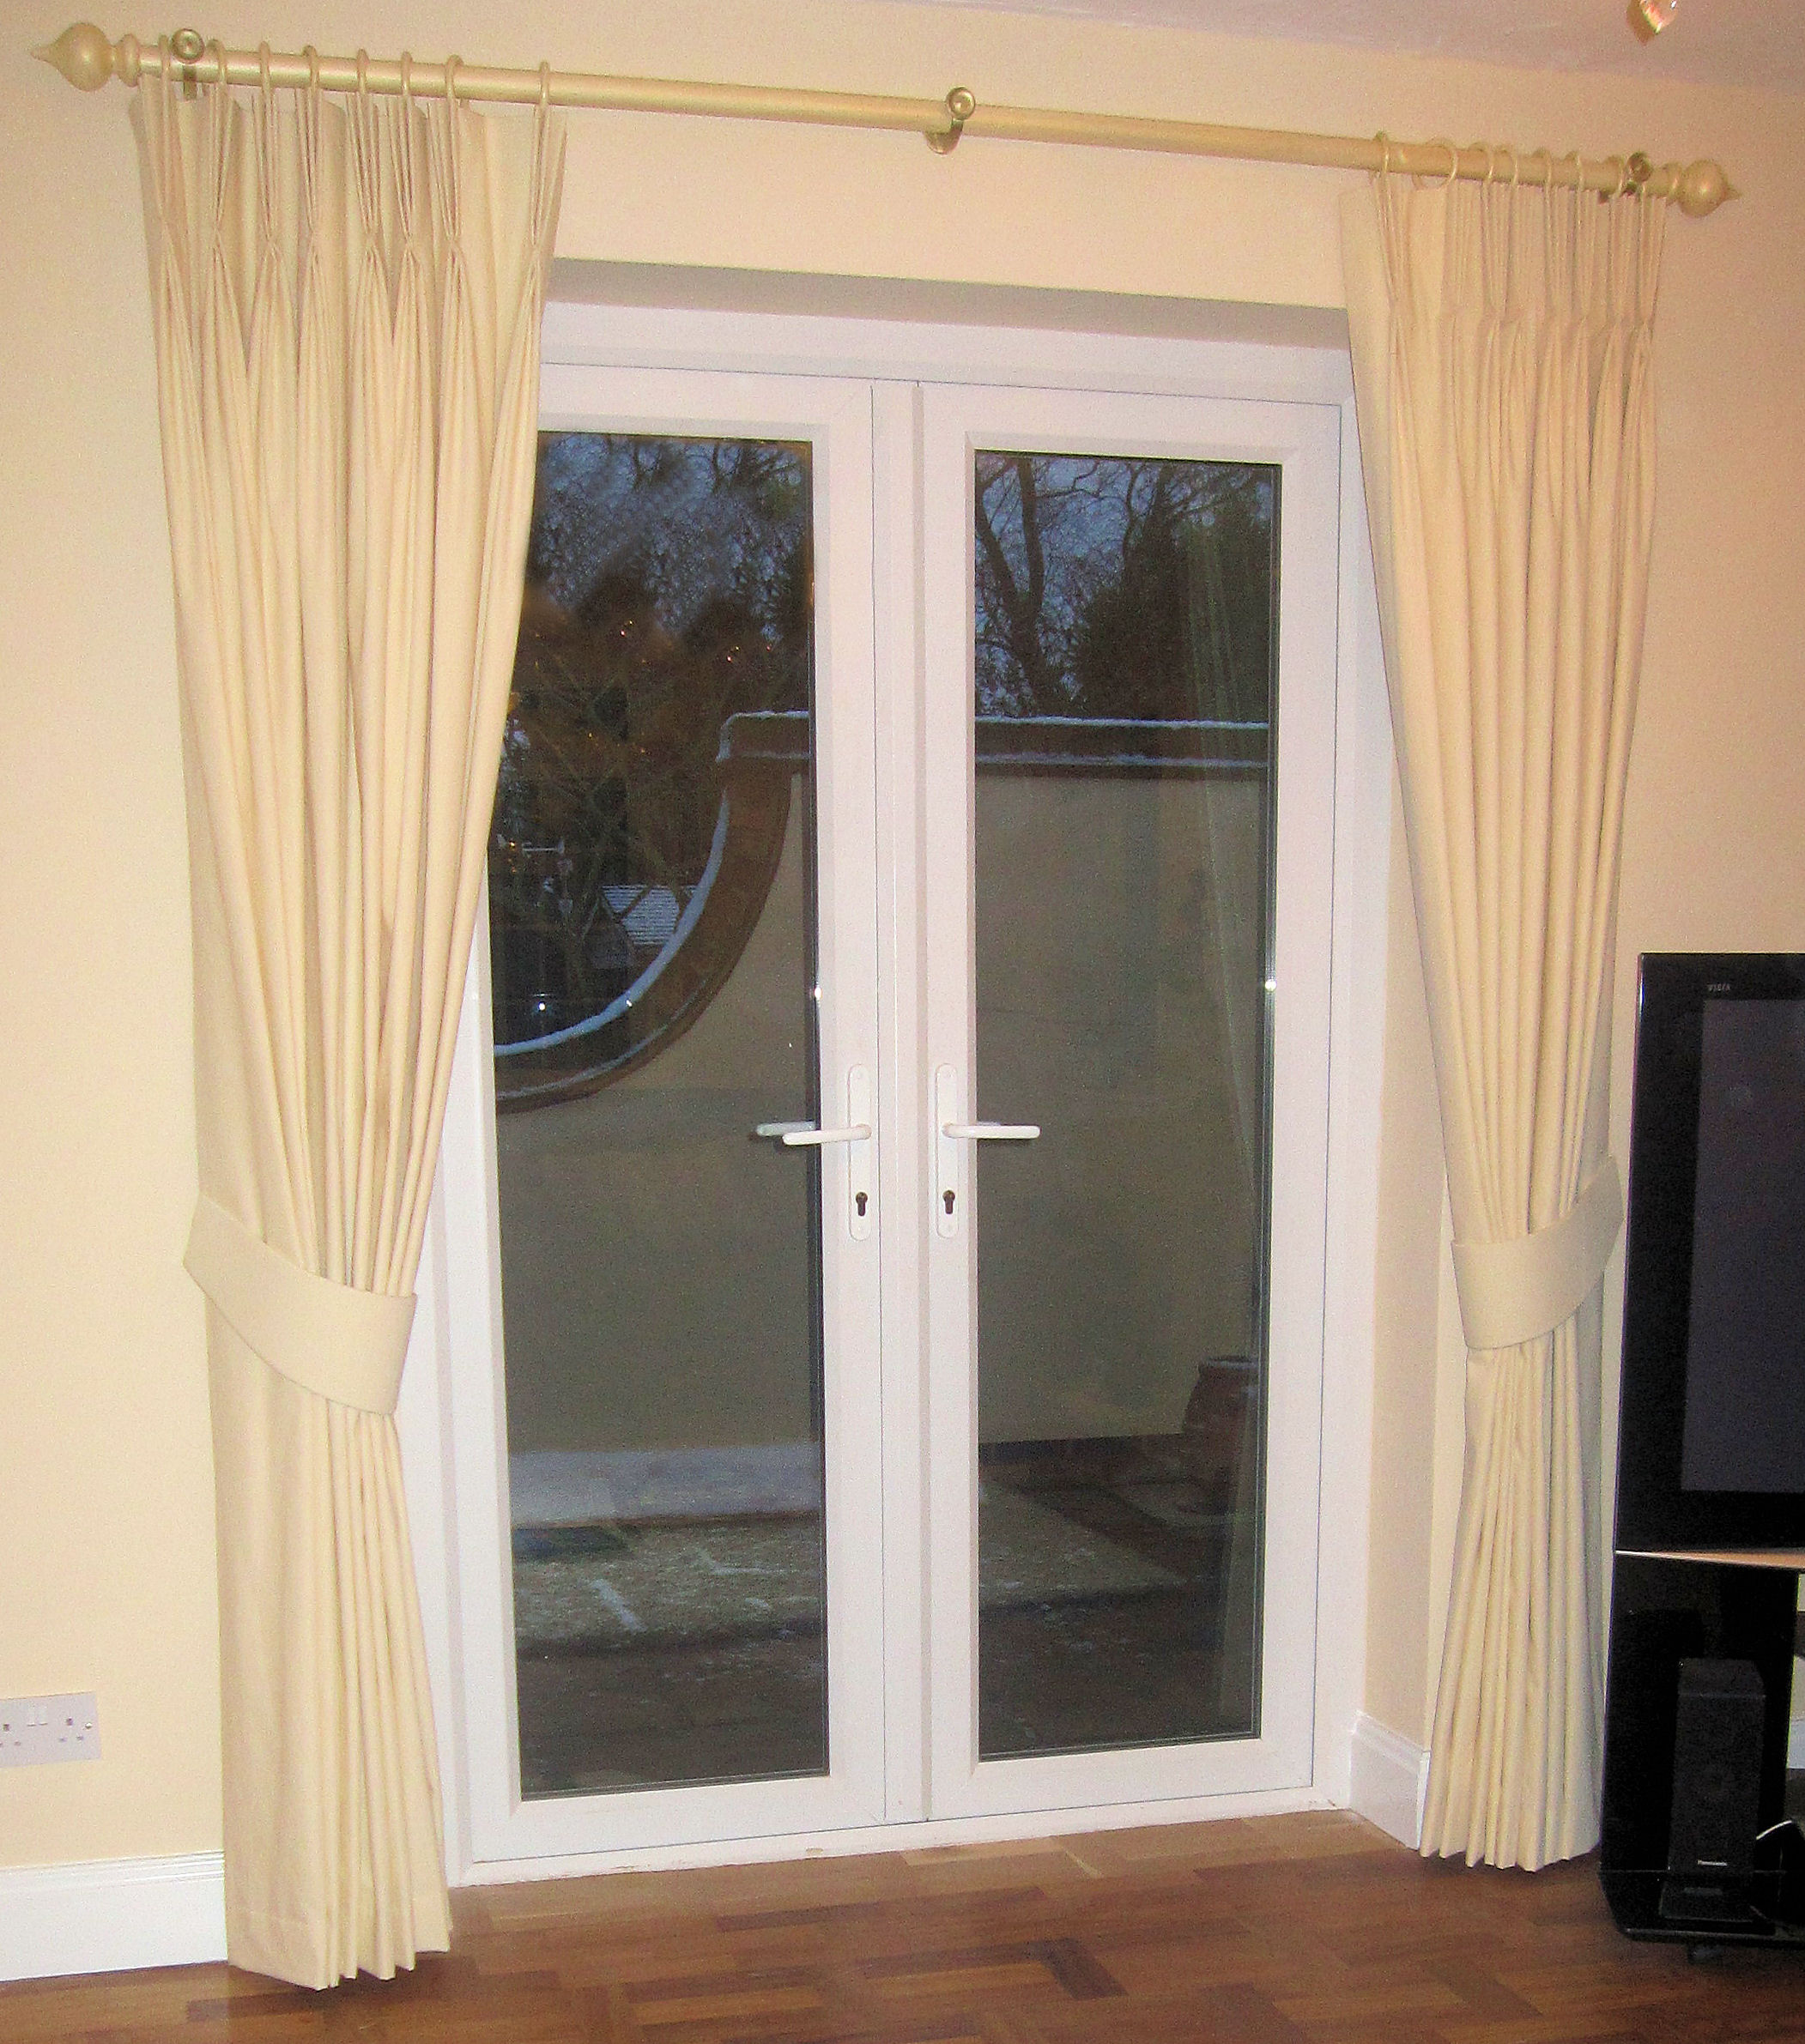 Curtains for french doors - French Door Curtains Curtains Drapes Shopping Home